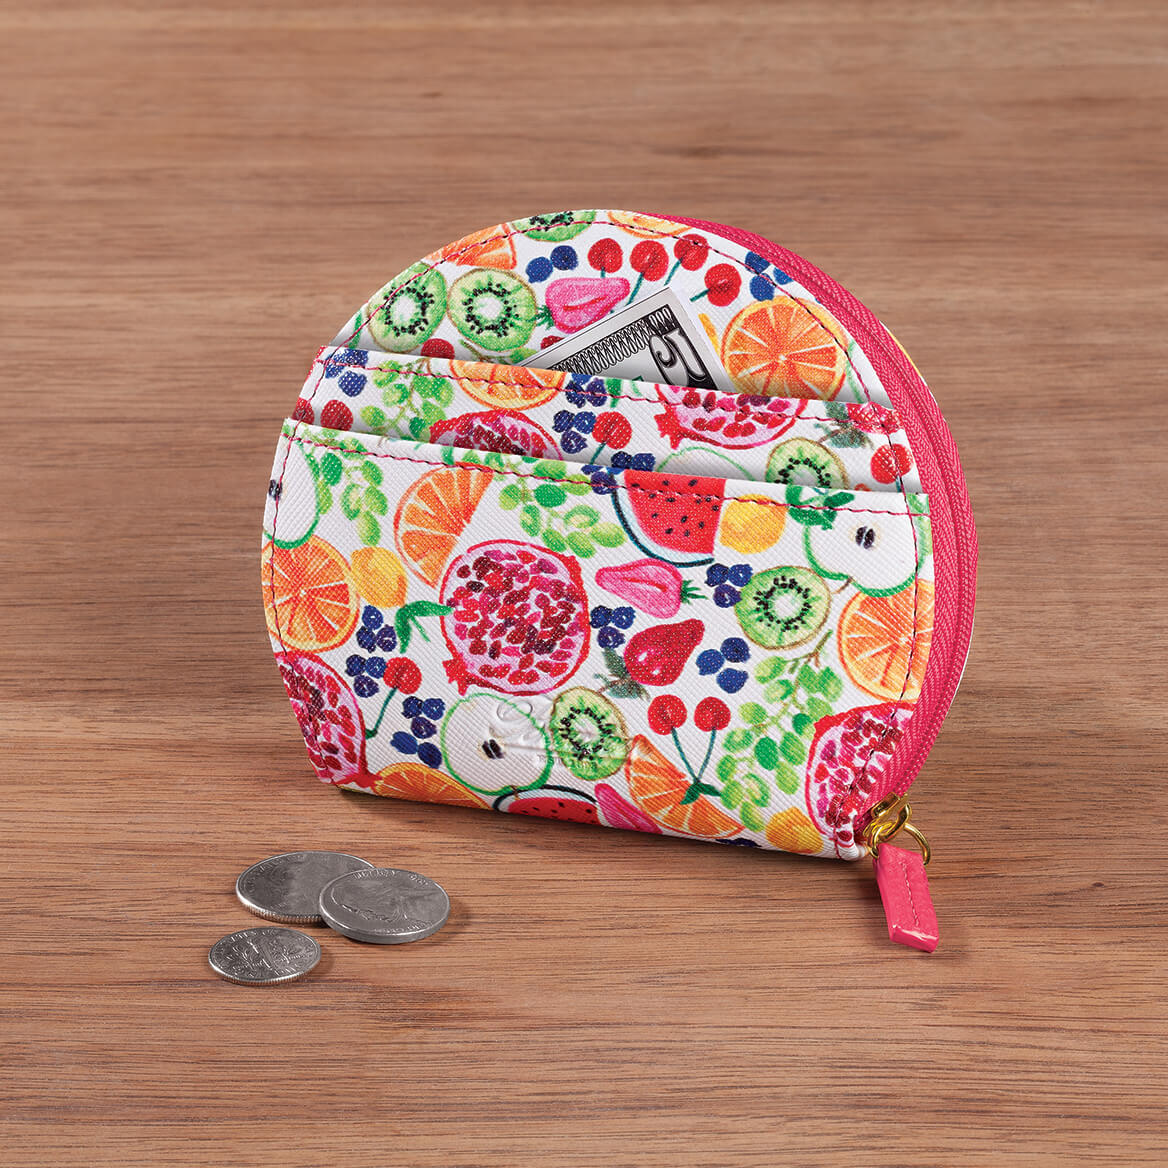 Buxton® Fruit Fiesta Domed Coin Purse-367419